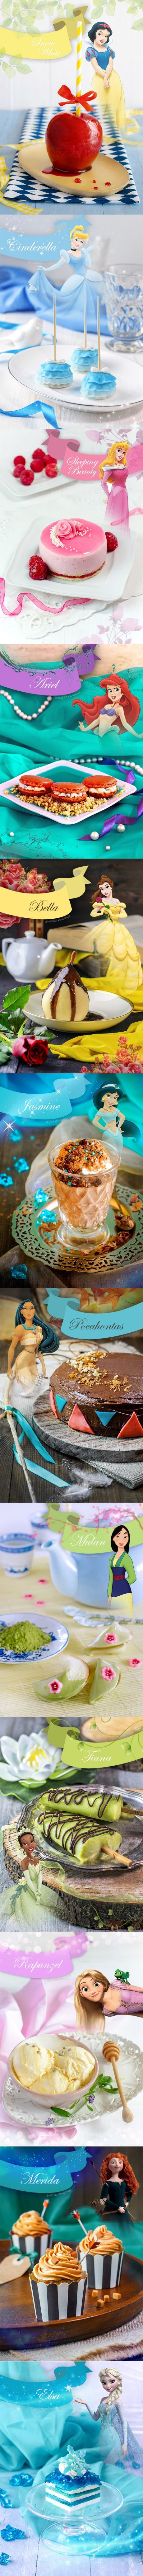 Desserts inspired by Disney Princesses - hope you like it!